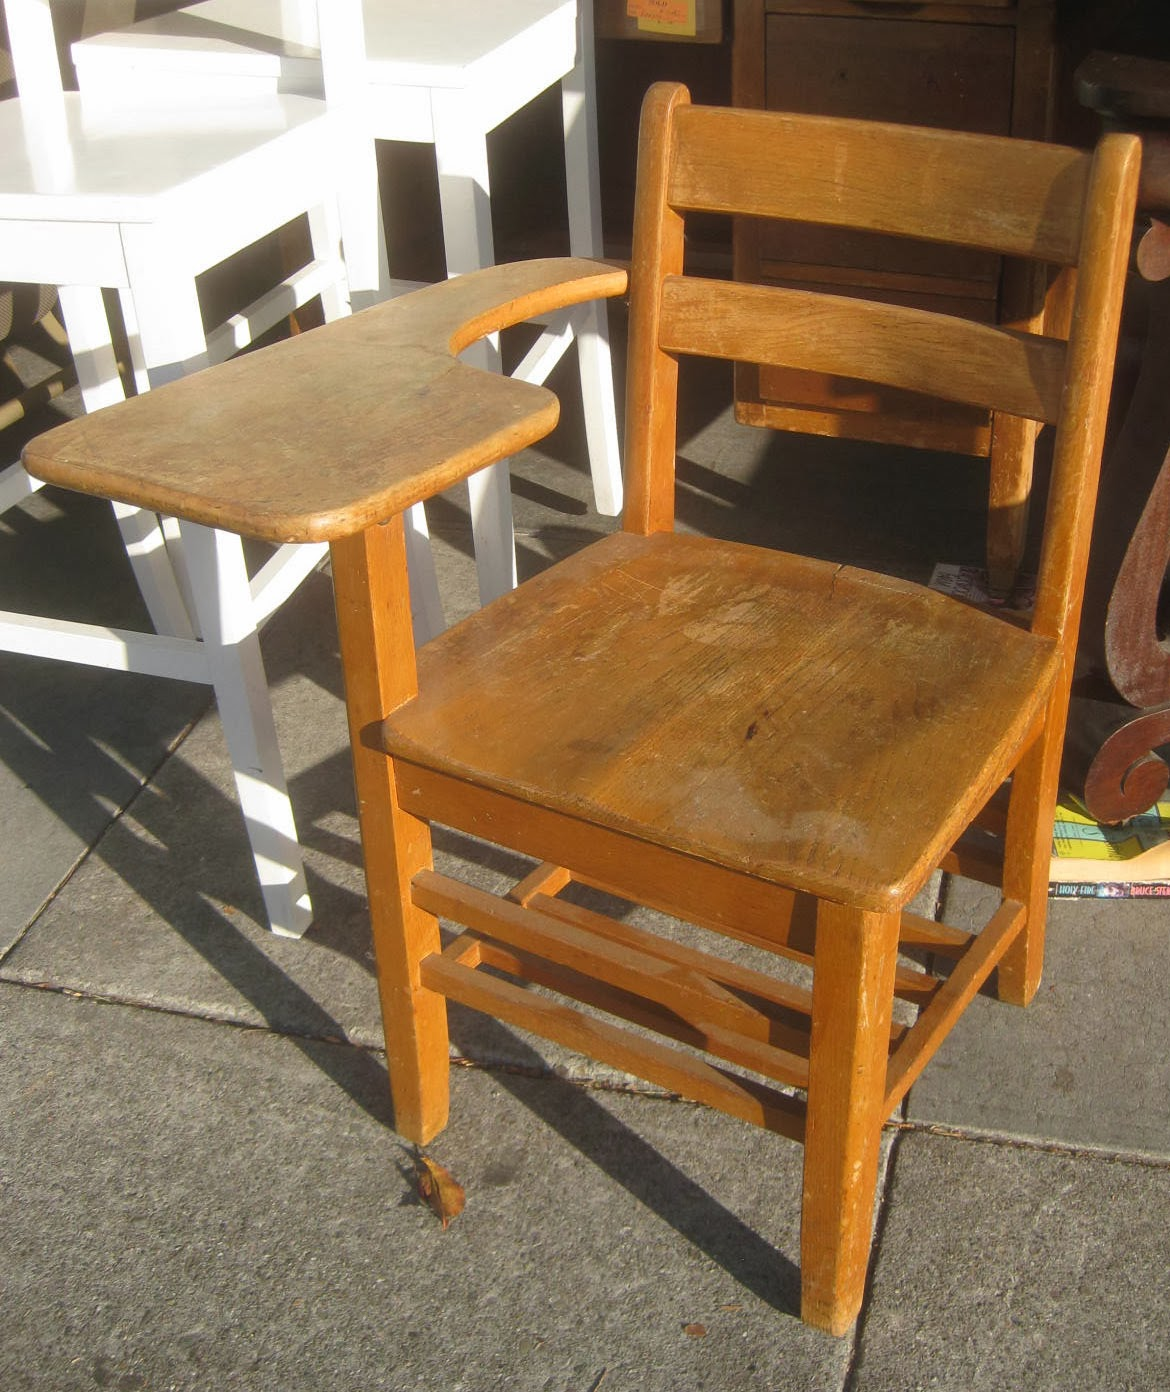 UHURU FURNITURE & COLLECTIBLES: SOLD Old School Desk Chair ...